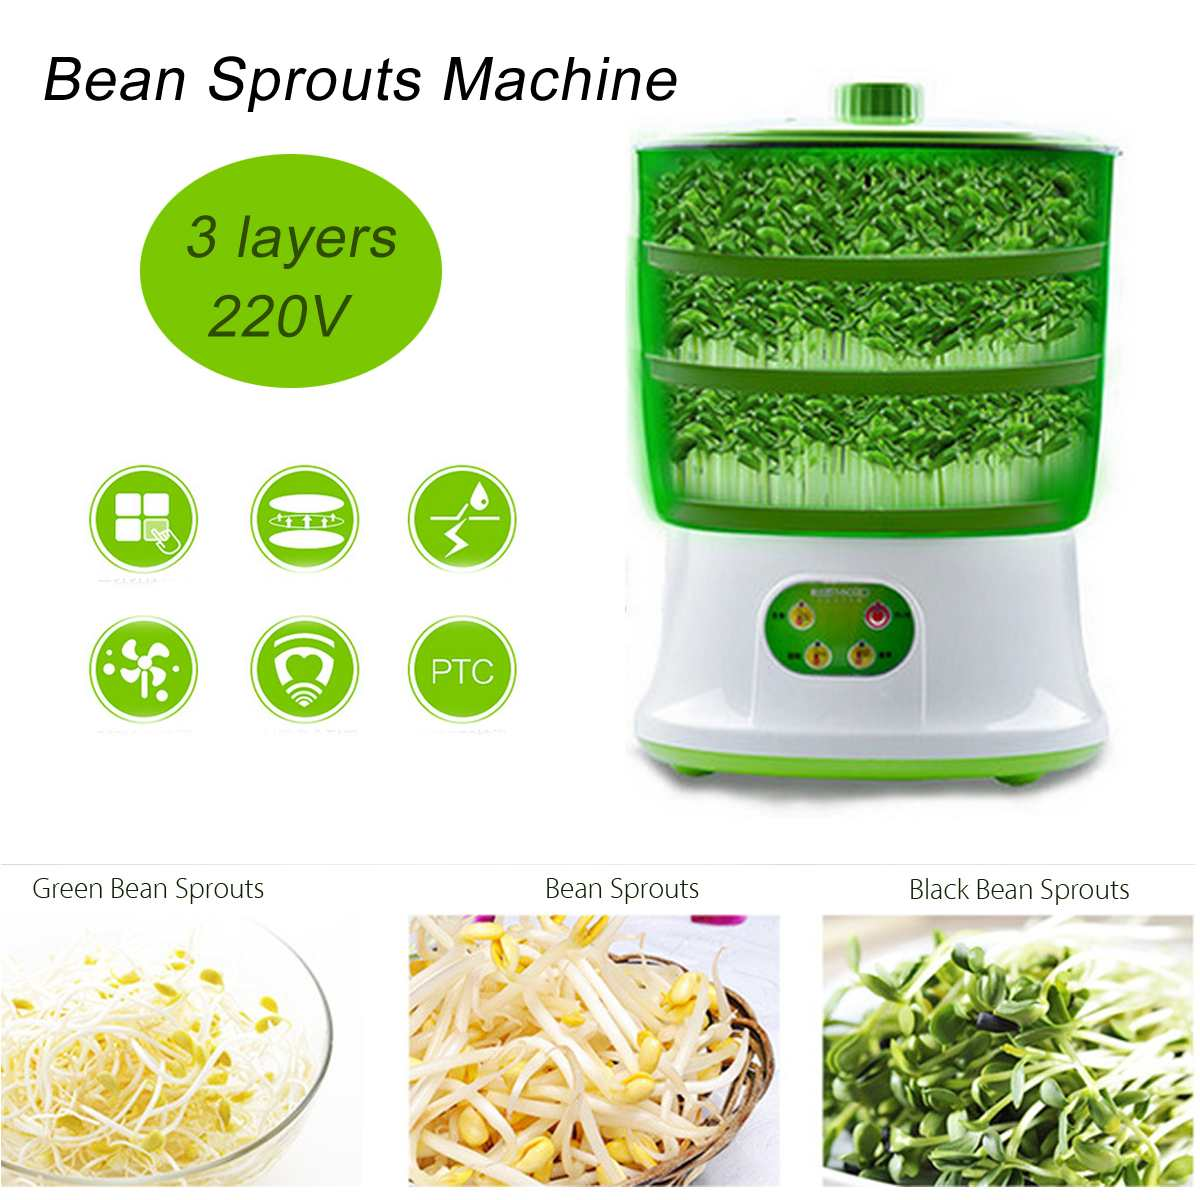 Warmtoo Intelligent 1.5L 2 Layers Bean Sproutss Machine Automatic DIY Housemade Sprout Green Seeds Growing 220V 20W 26x35cm image